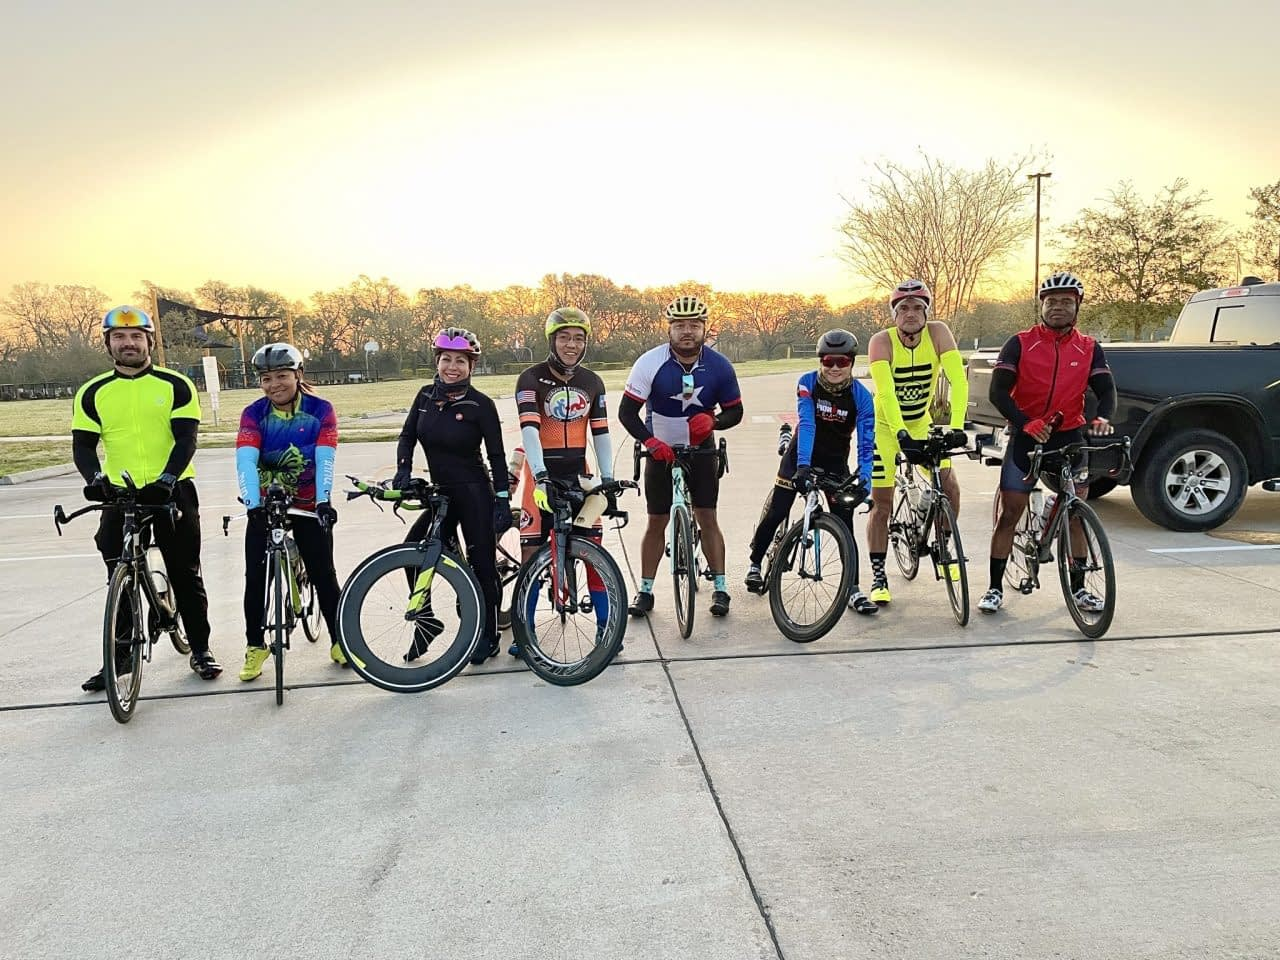 A frustrating 55 mile 🚴🏽♂️ ride with the A-groupers